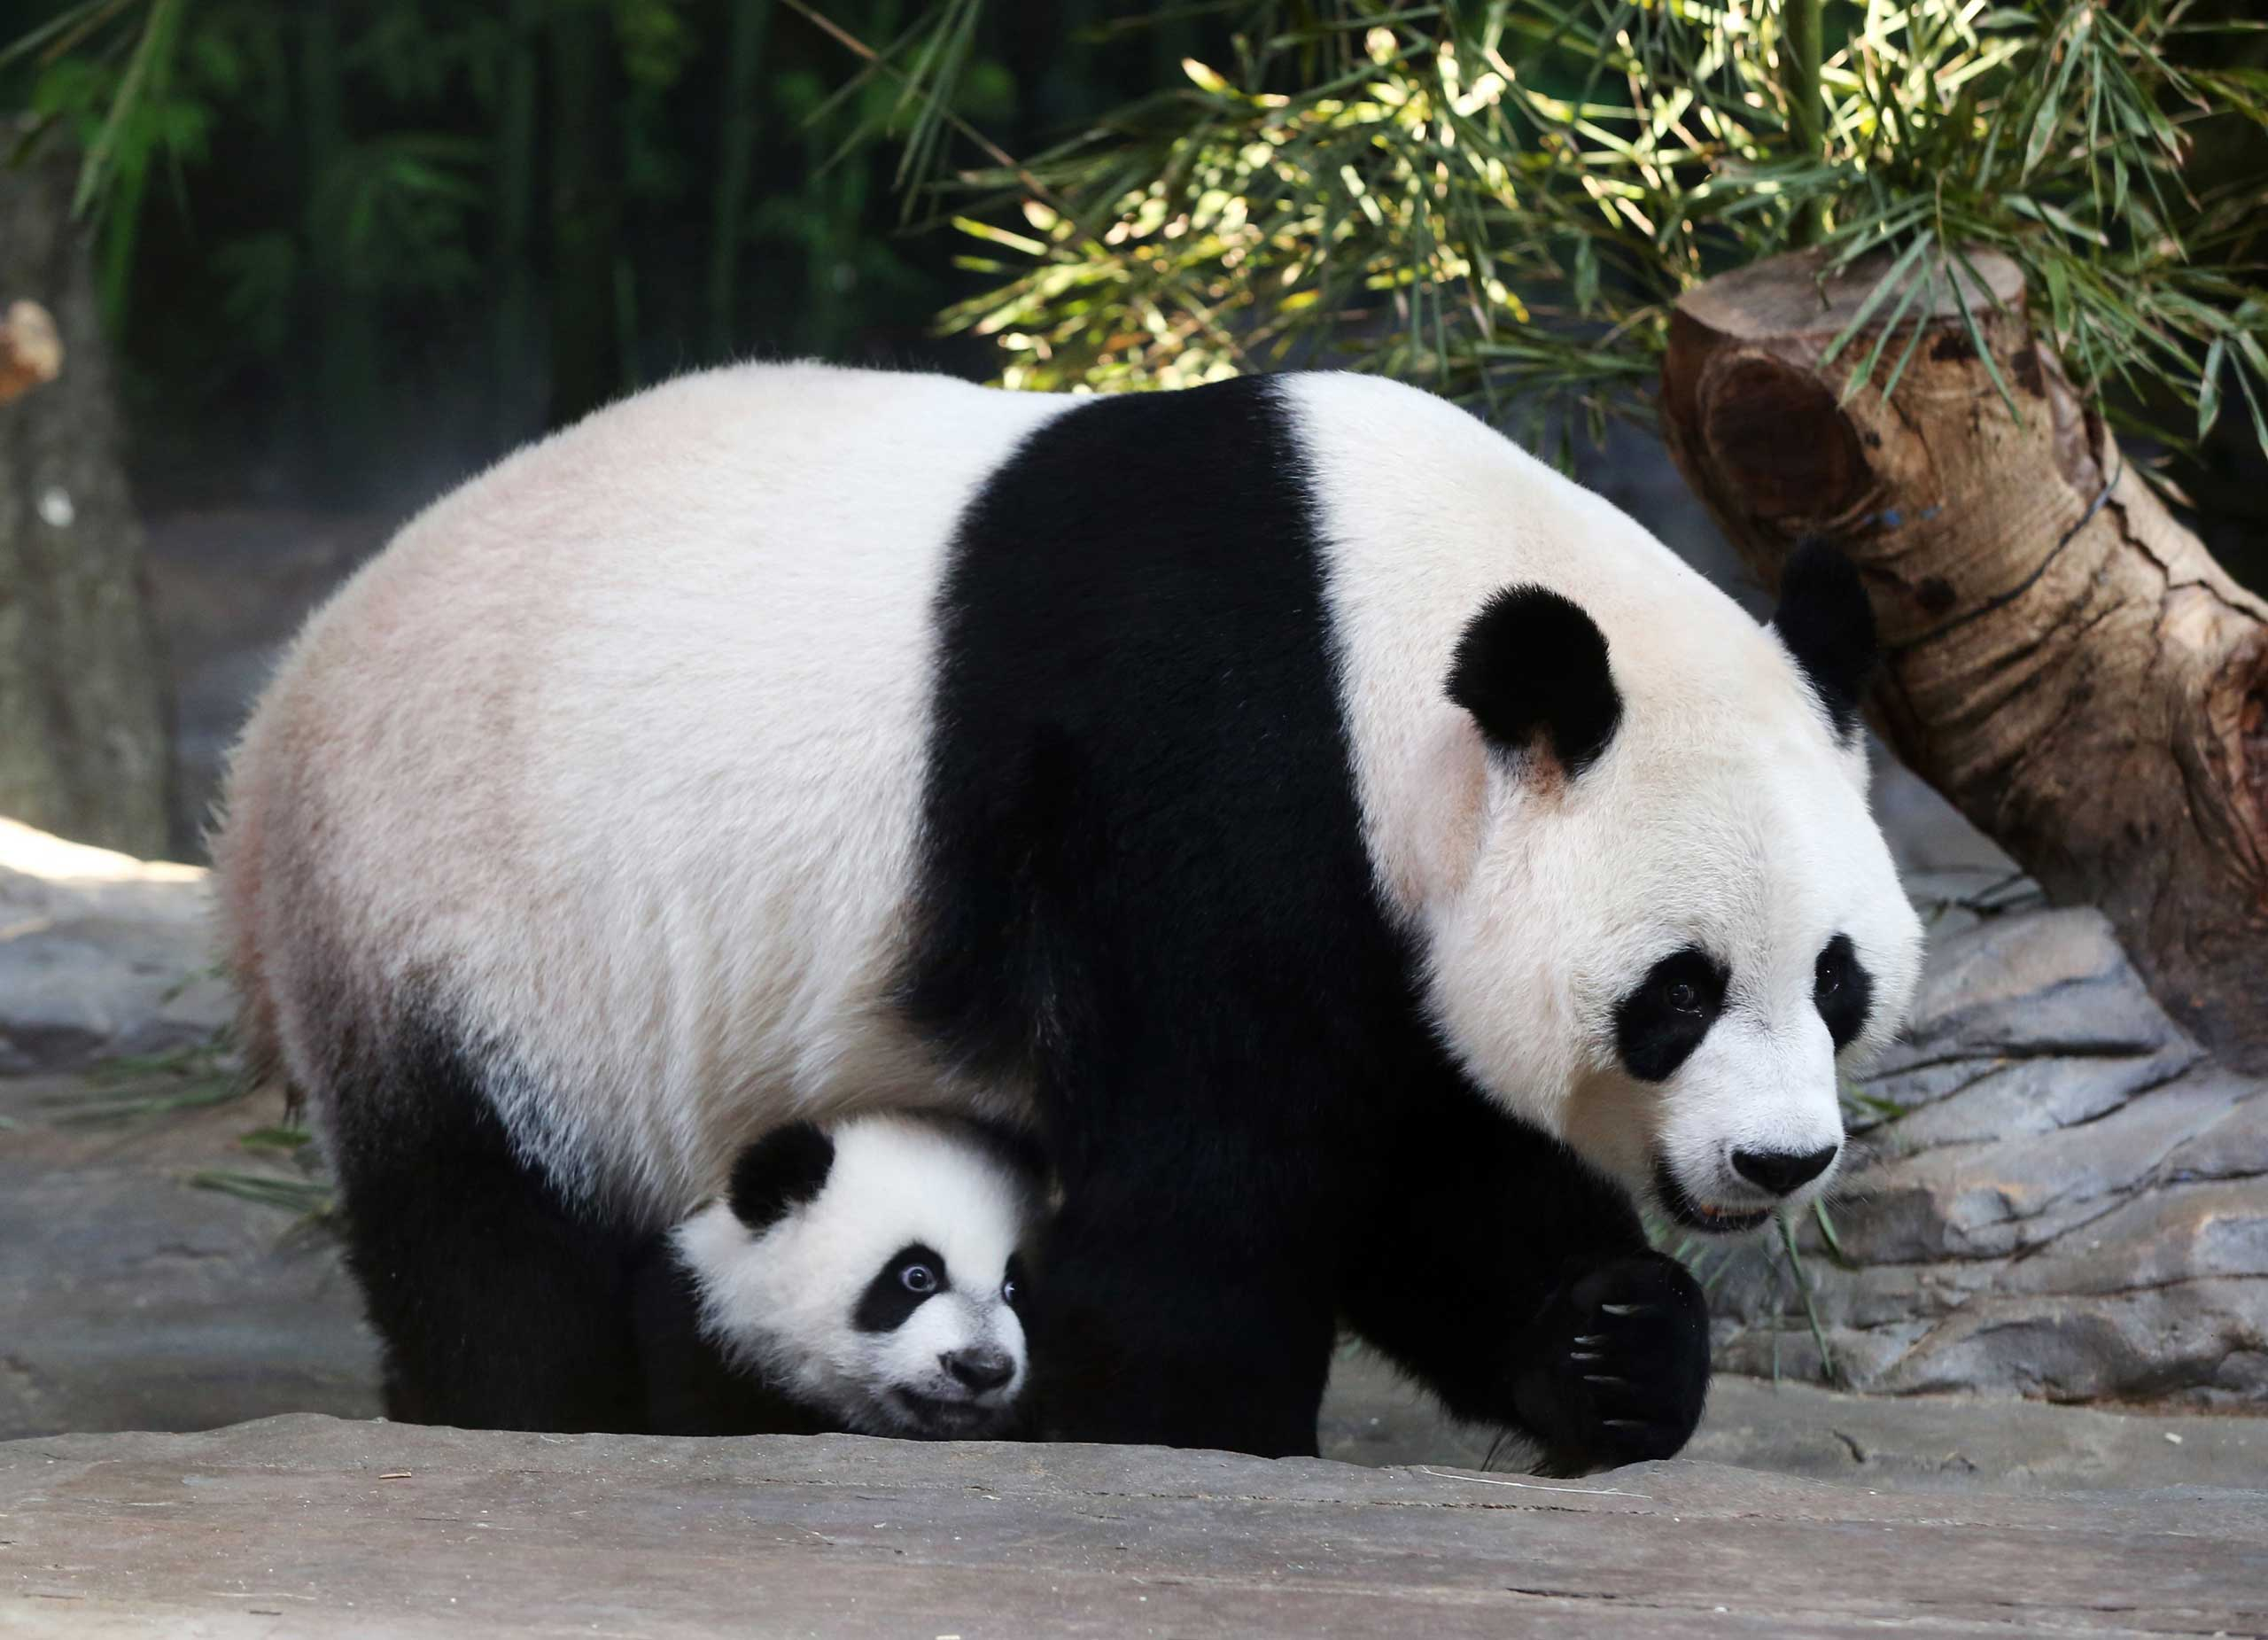 Mother giant panda Juxiao is seen with one of her triplets at Chimelong Safari Park in Guangzhou, Guangdong province, Dec. 9, 2014.